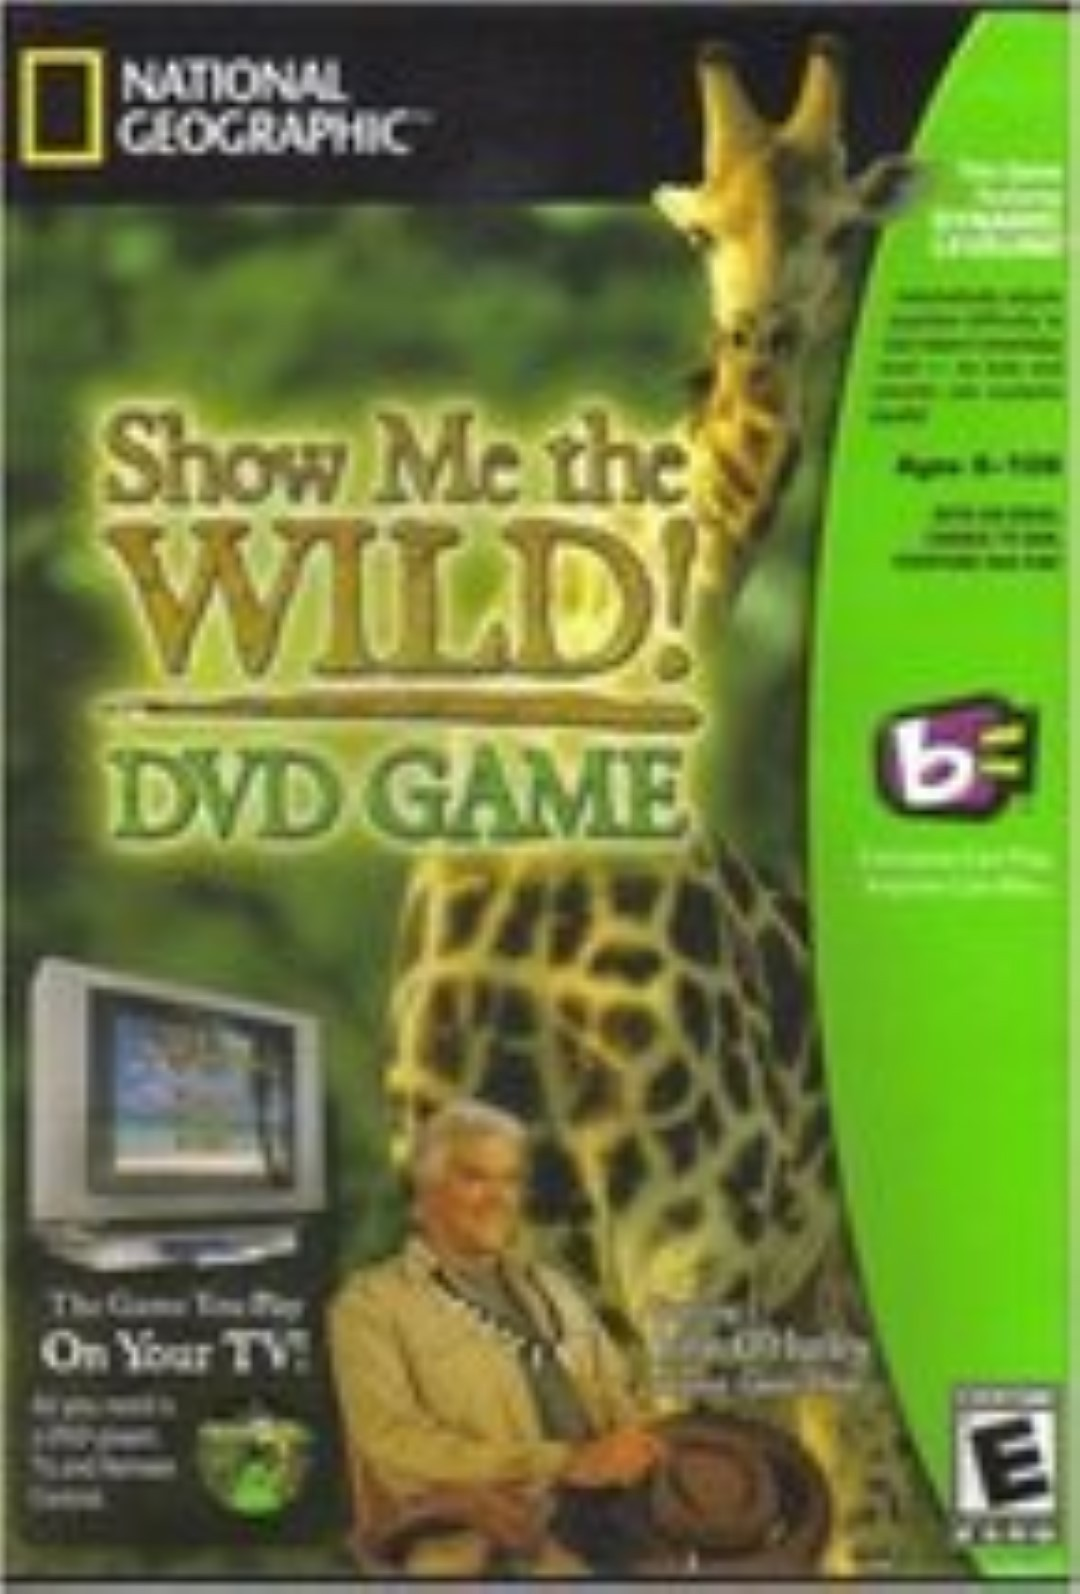 Show Me the Wild!  Game with John O'Hurley by National Geographic Dvd